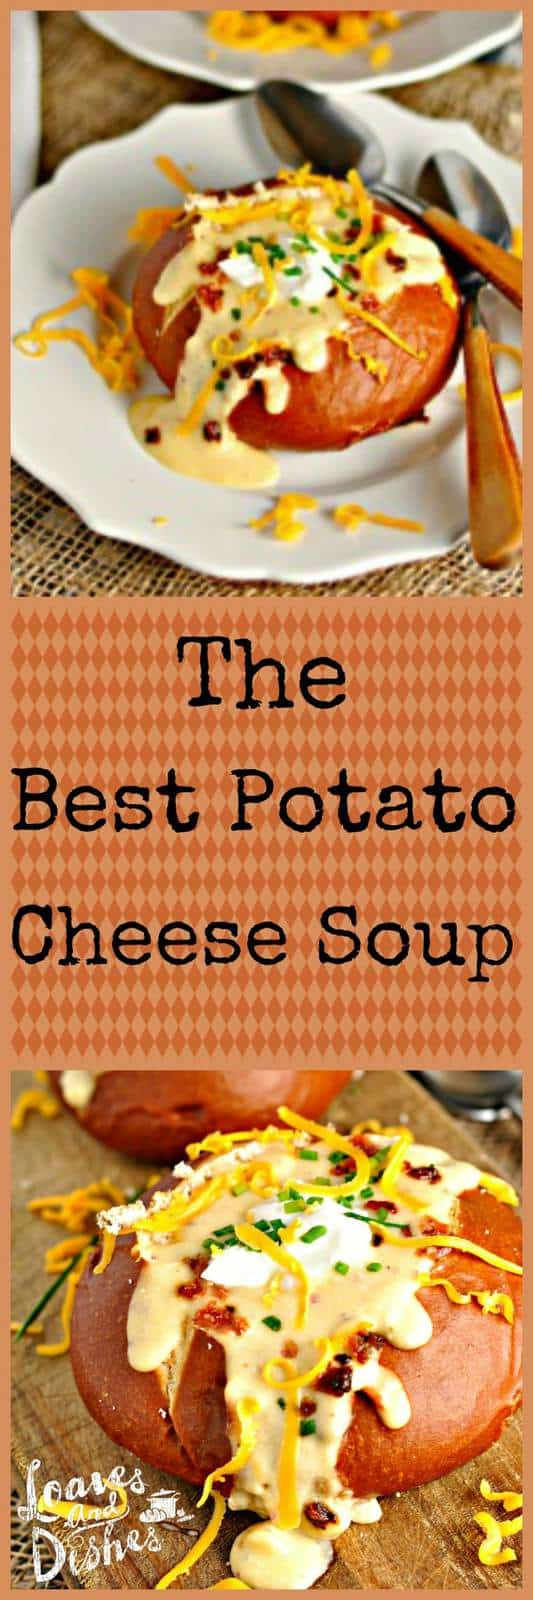 Warm up with a hot bowl of Potato Cheese Soup! So WORTH the effort!  You won't be sorry.  Comfort in a bowl.  www.loavesanddishes.net